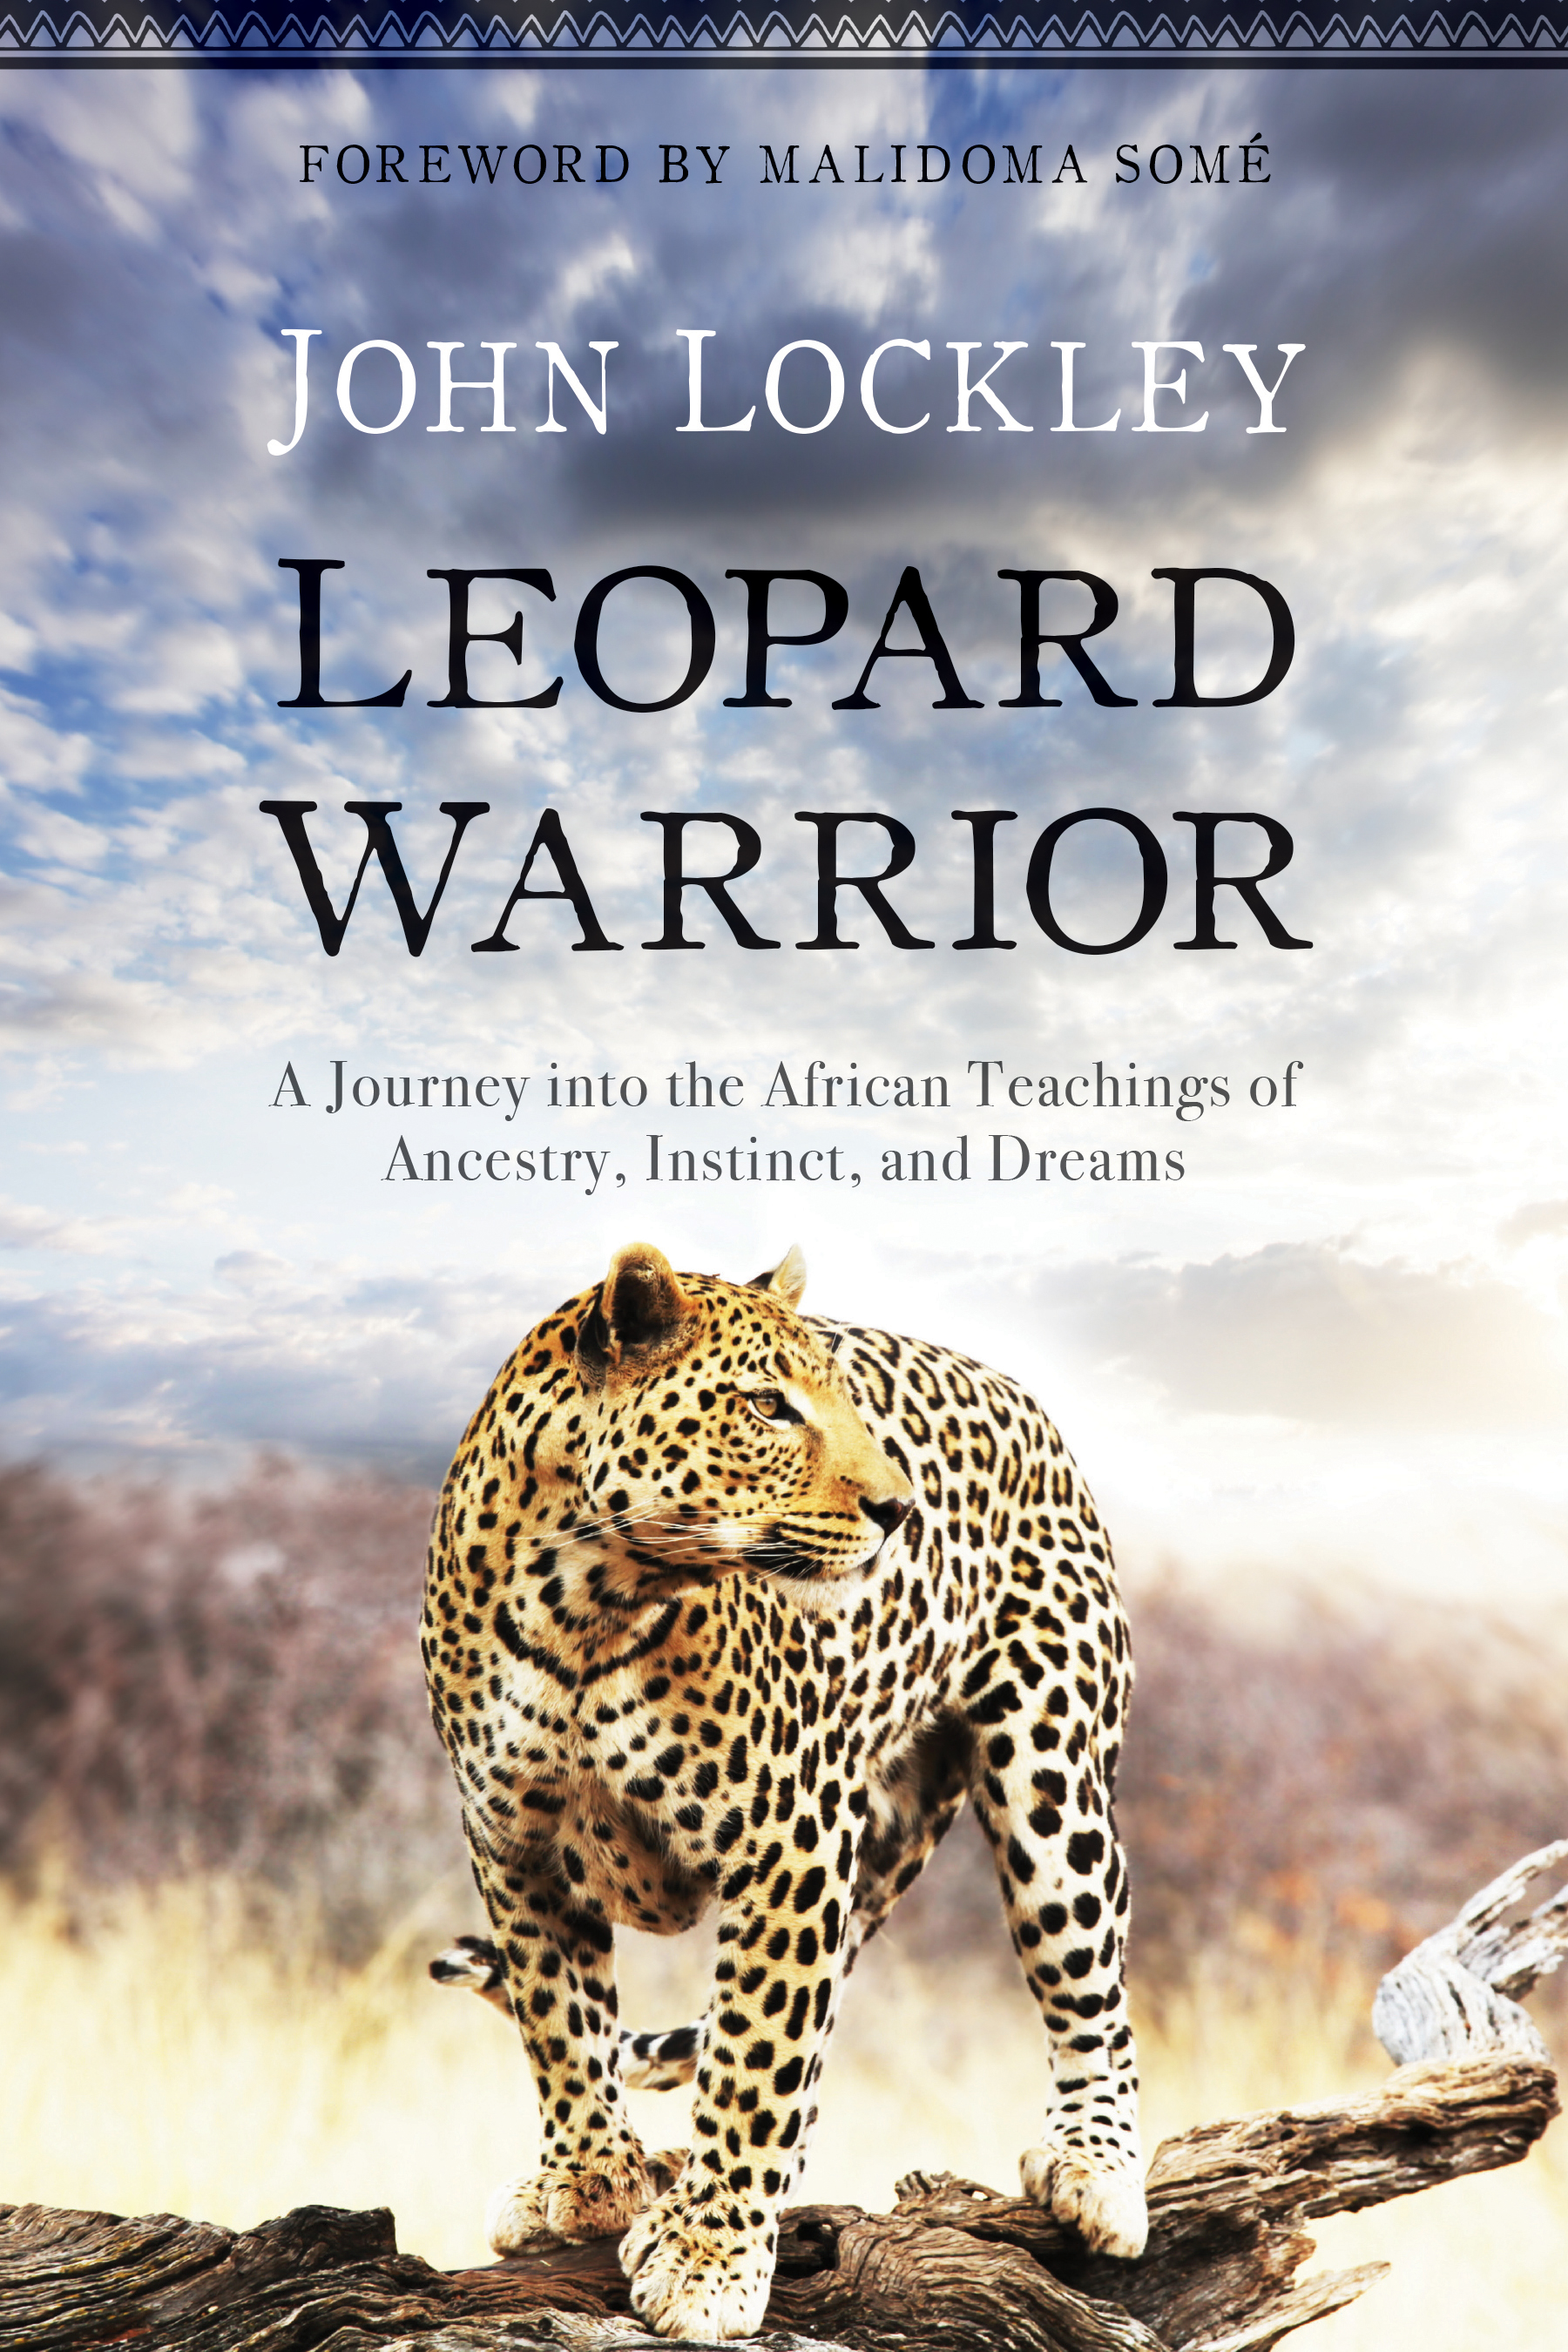 BK05051-Leopard-Warrior-frontlist-cover.jpg